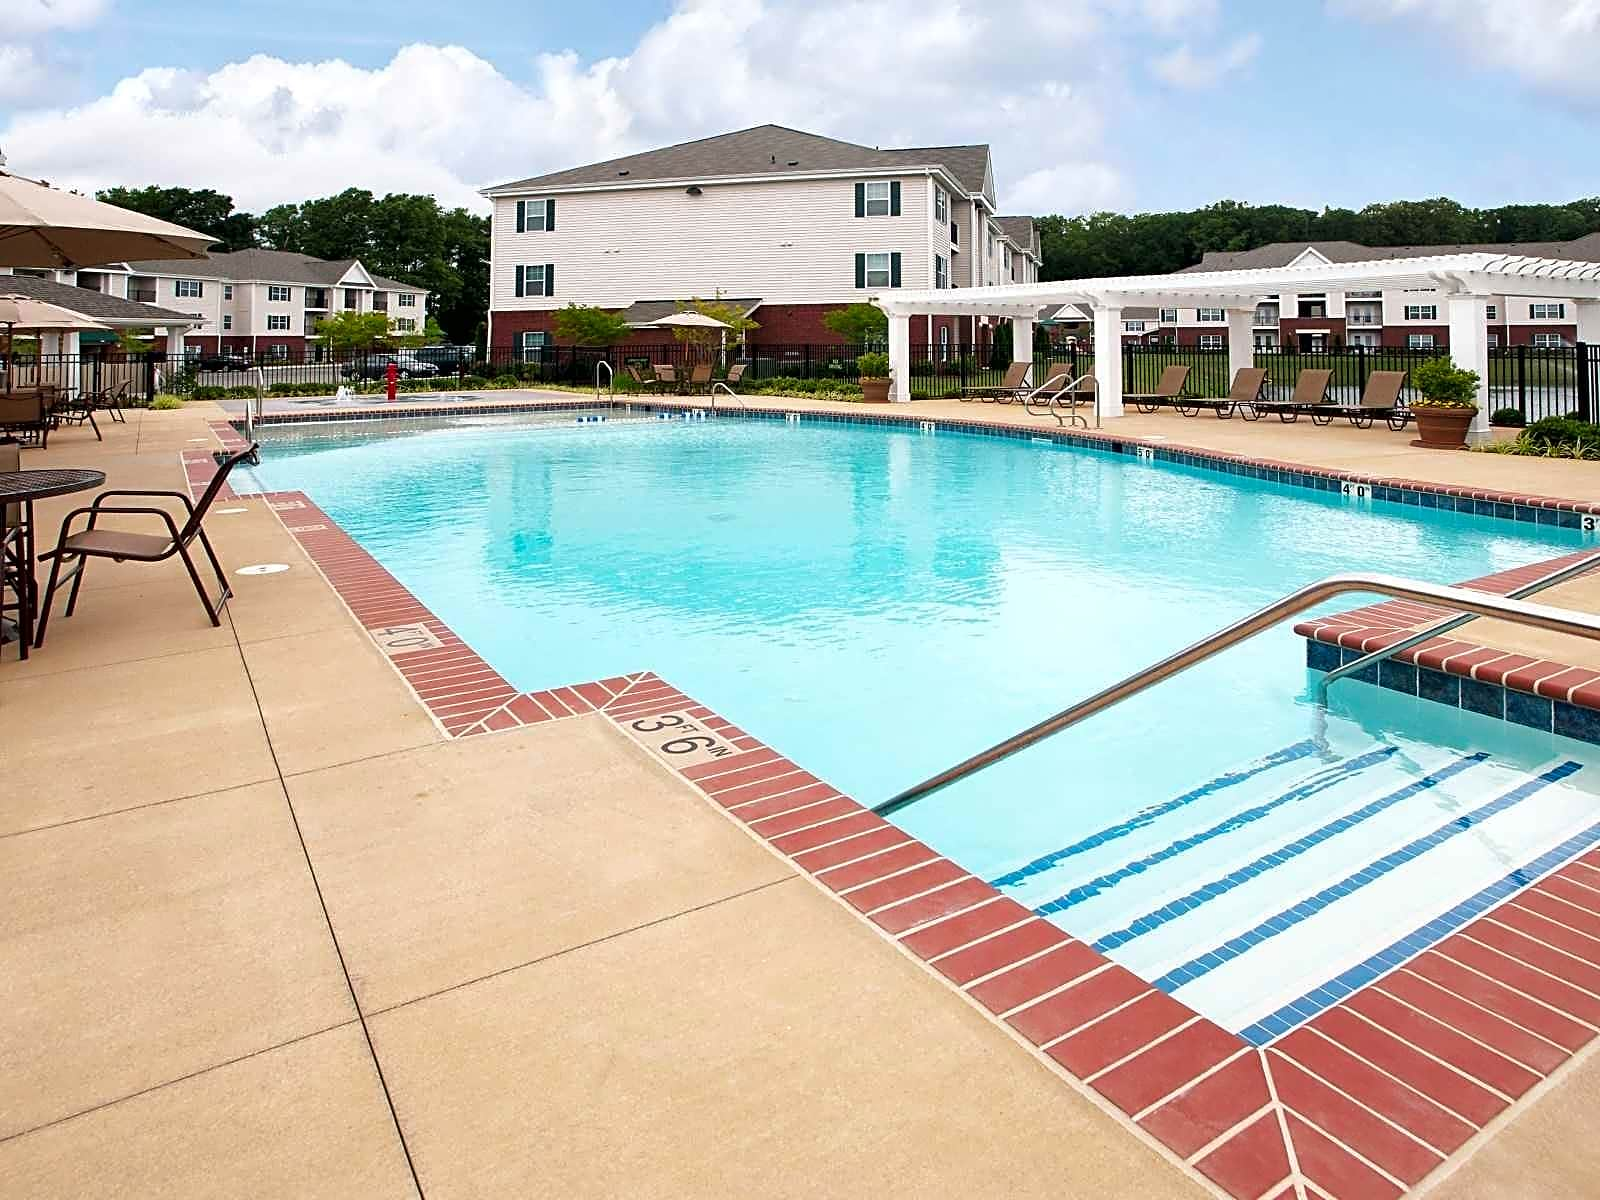 Photo: Newport News Apartment for Rent - $730.00 / month; 1 Bd & 1 Ba